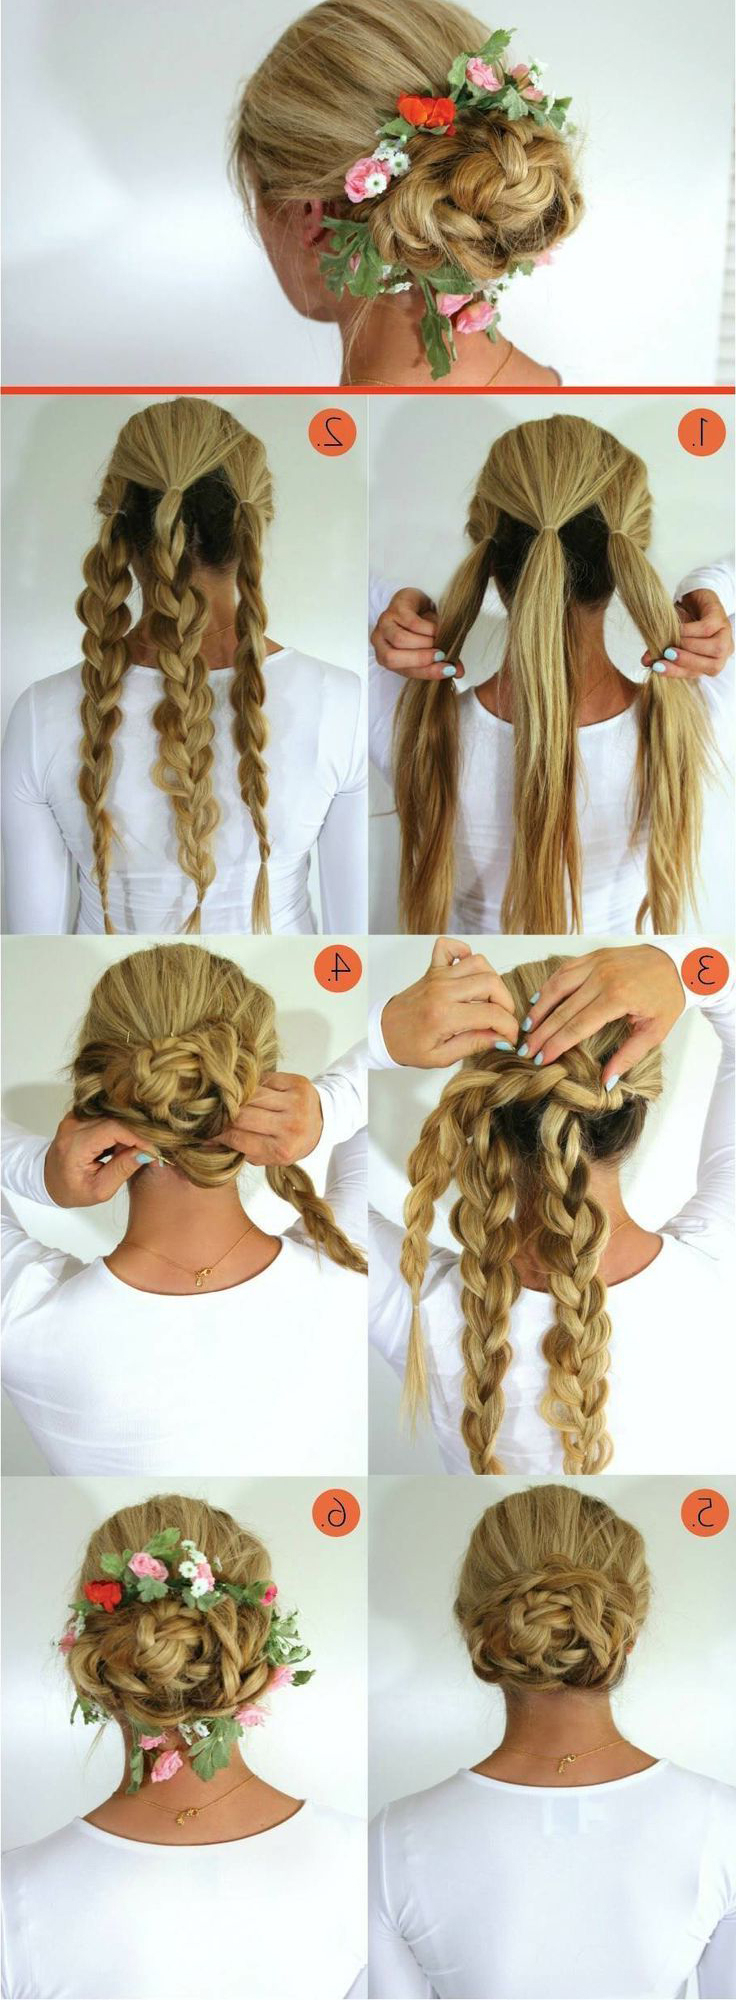 The Triple Braided Bun Hairstyle (View 6 of 20)